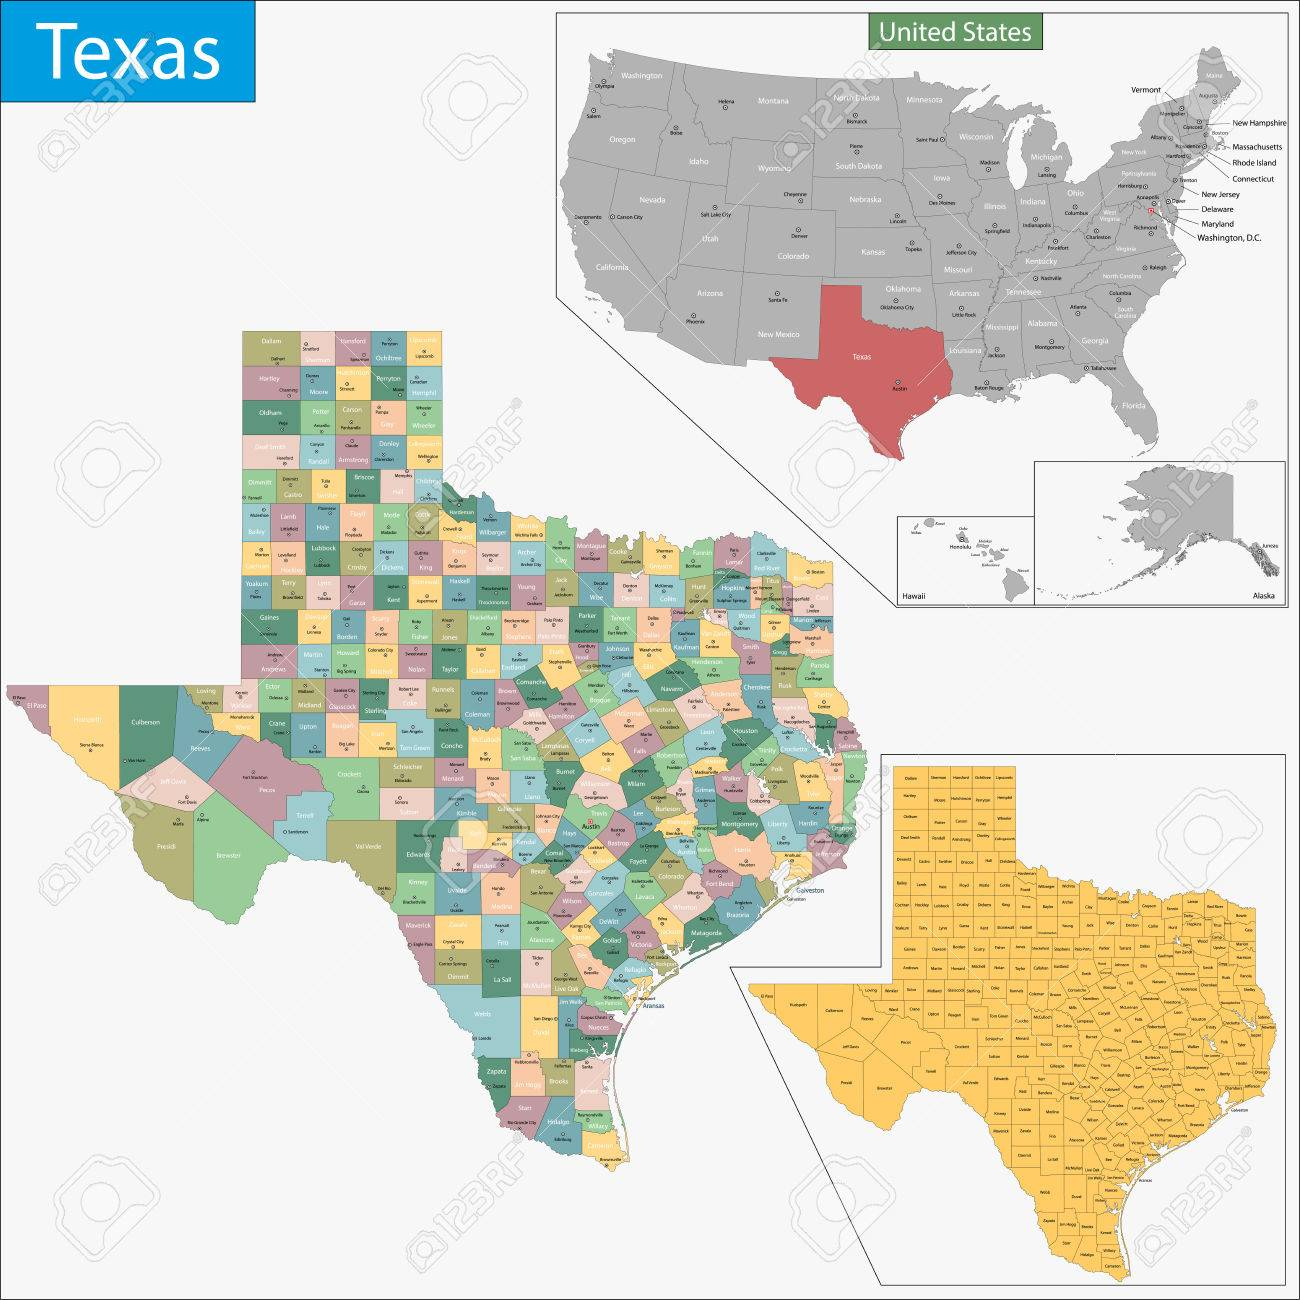 Map Of Texas State Designed In Illustration With The Counties - Texas state map with counties